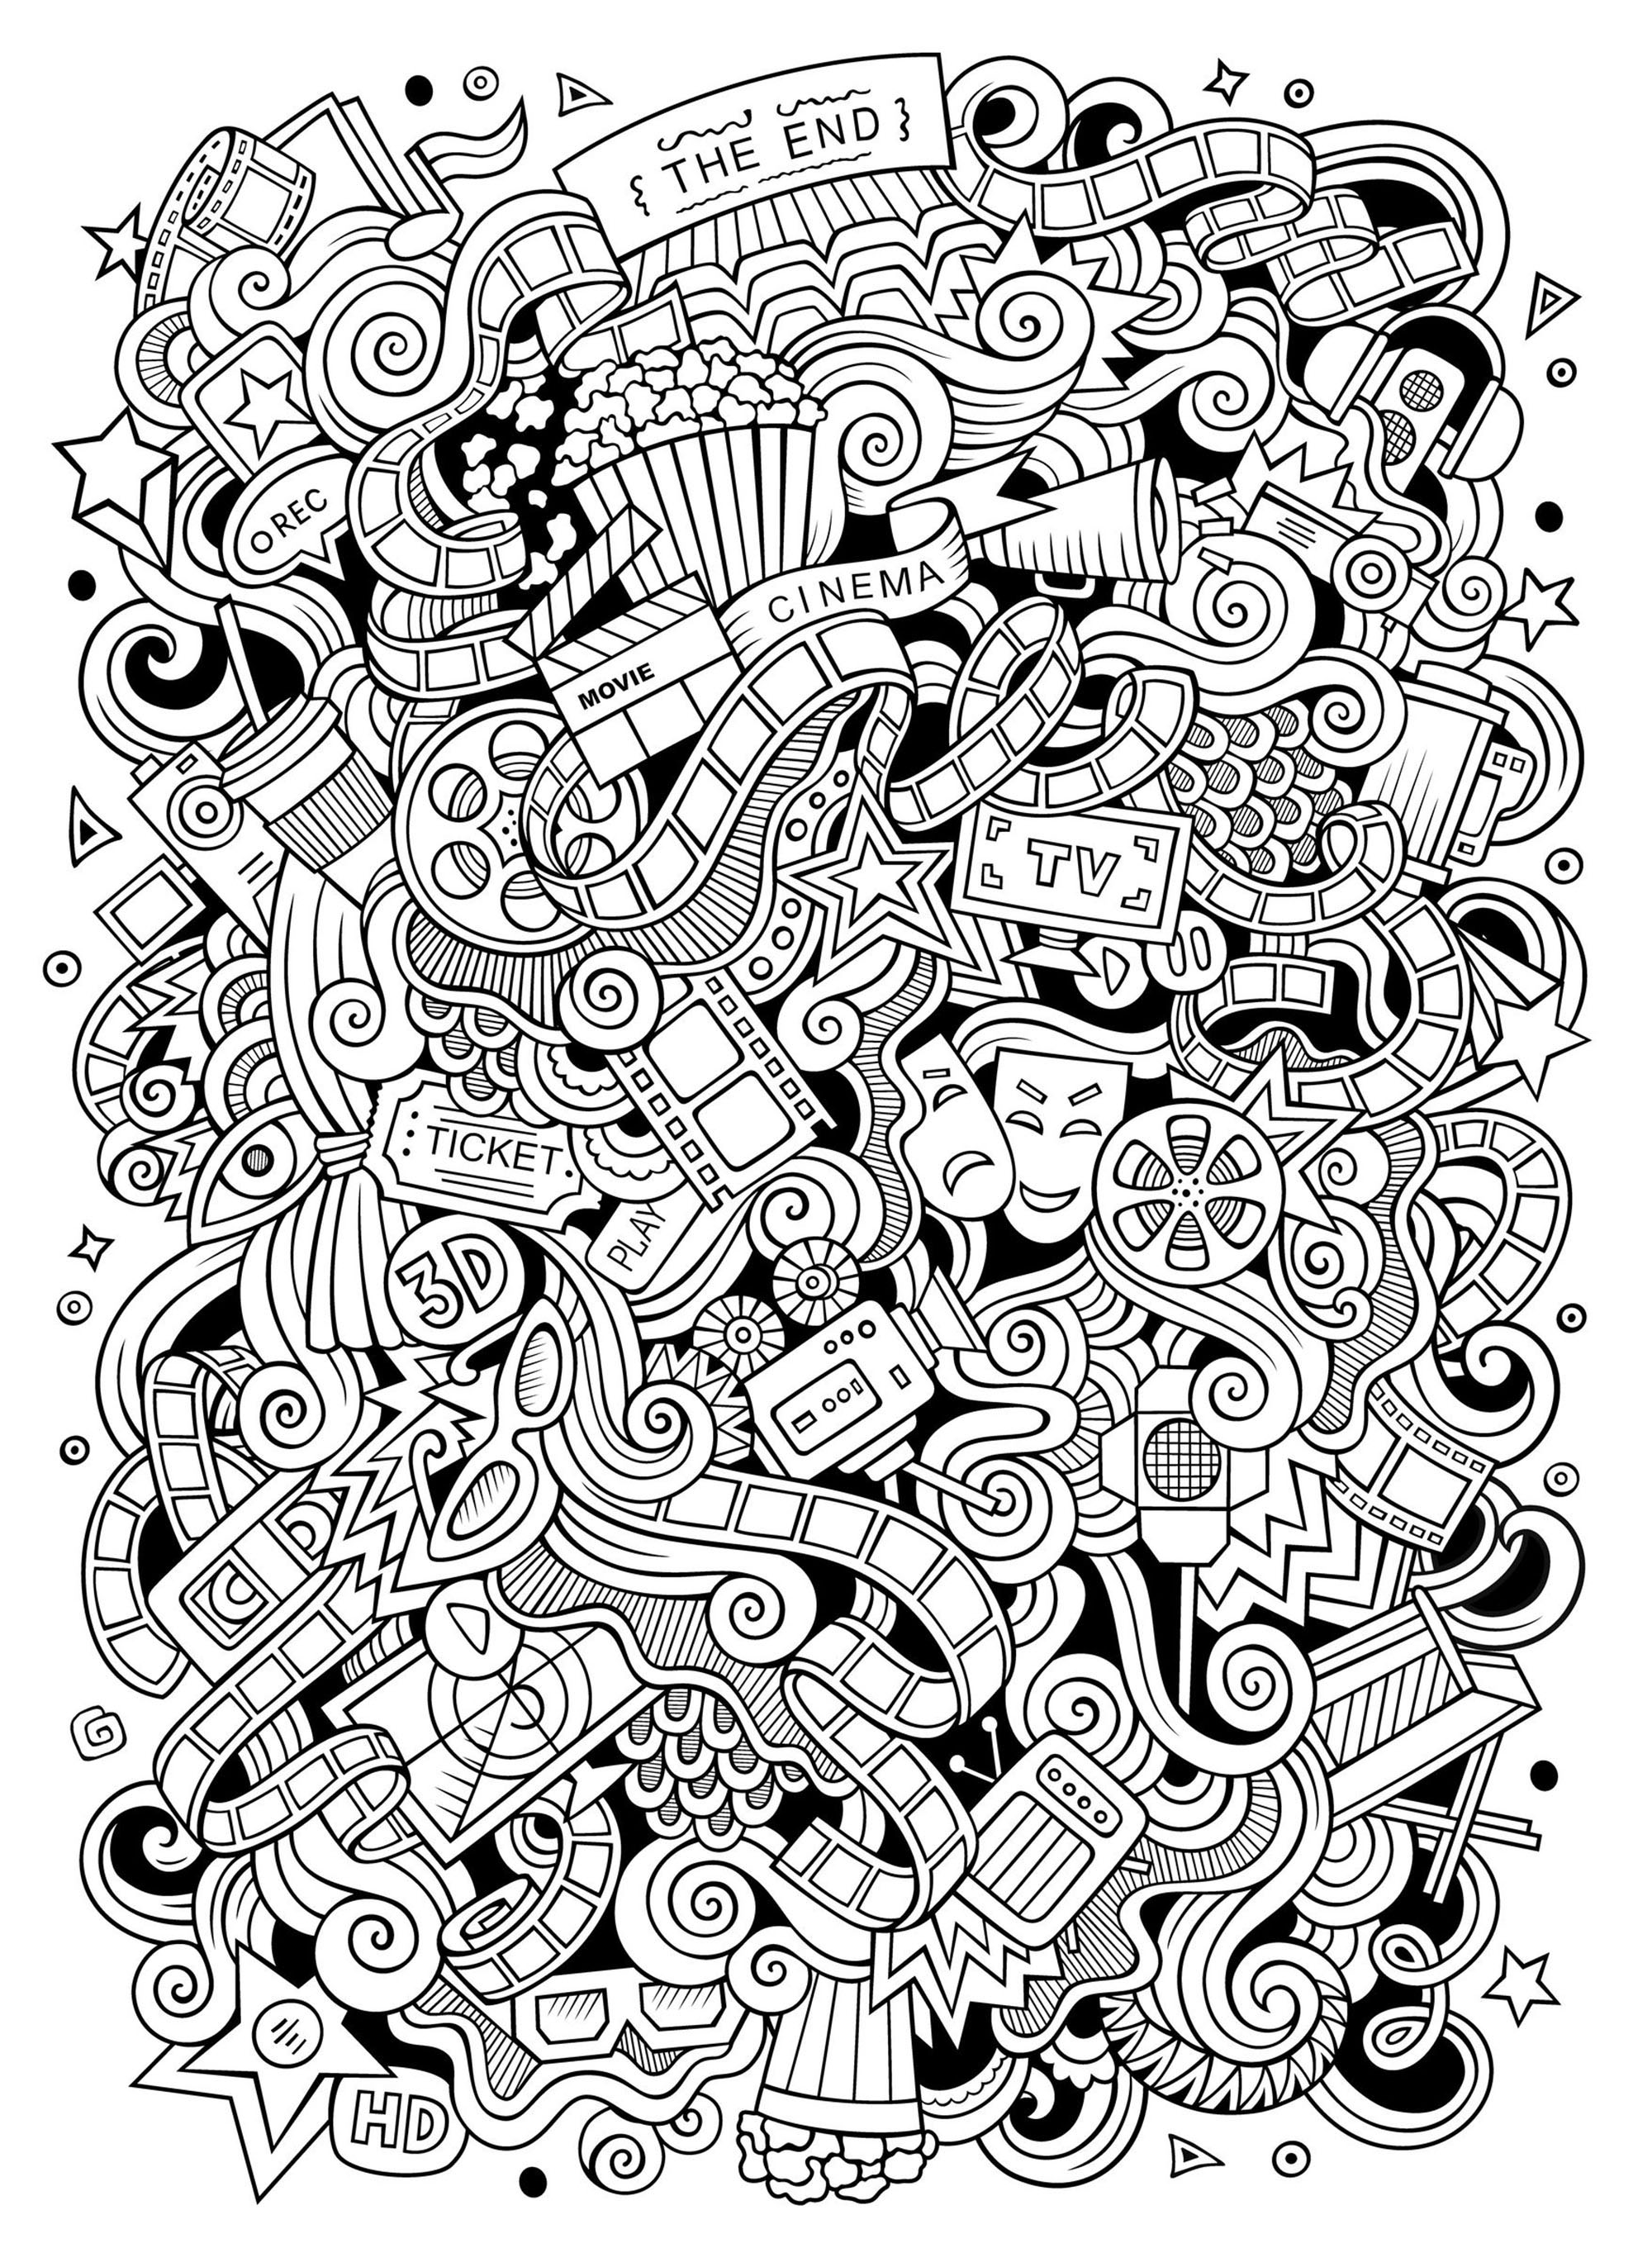 Cinema Doodle Doodle Art Doodling Adult Coloring Pages